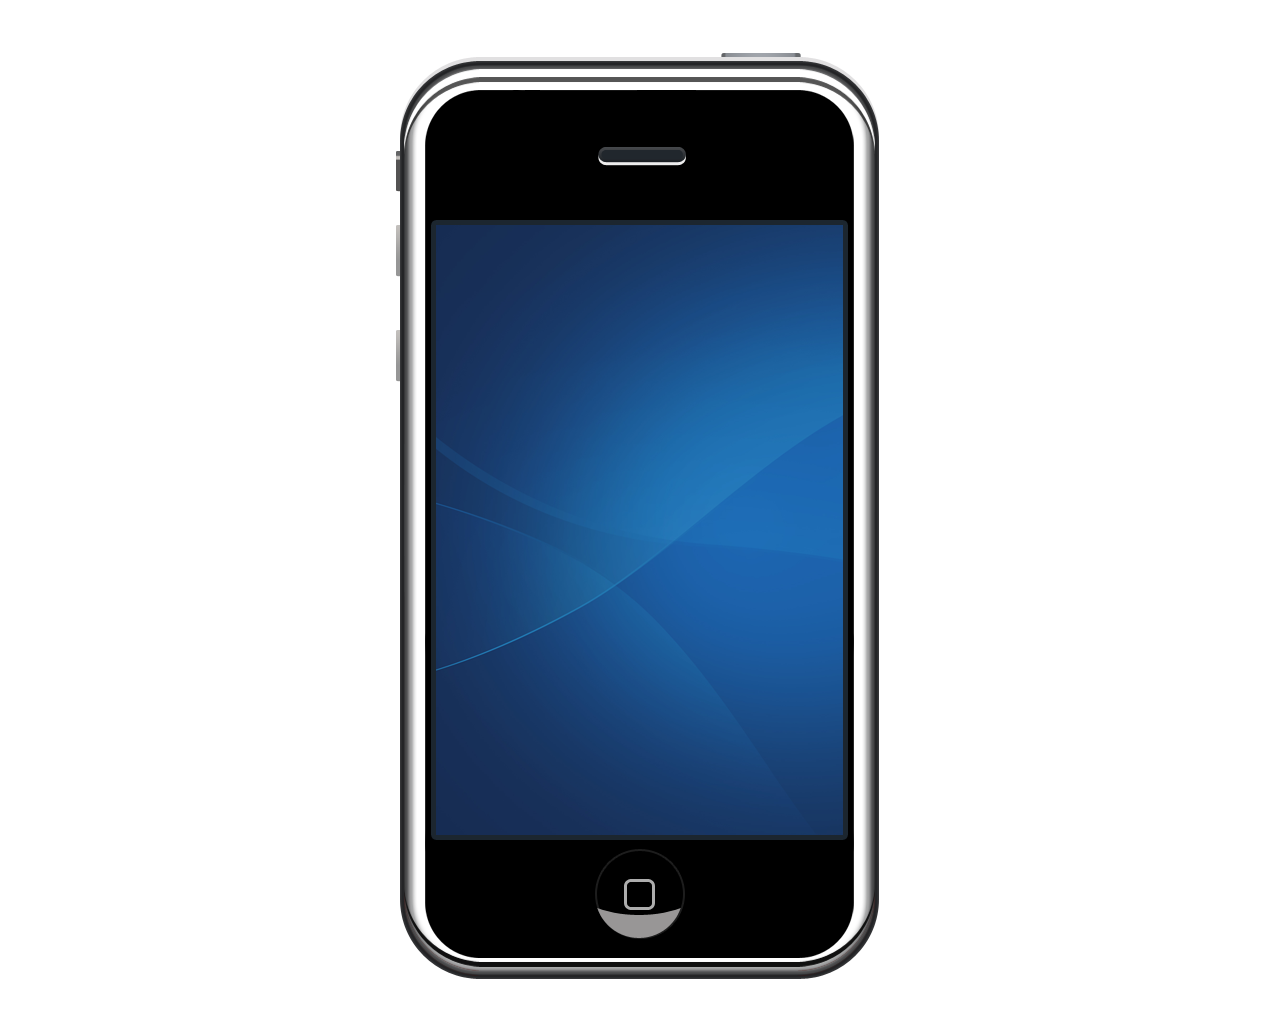 Apple iphone off clipart graphic freeuse stock Iphone Apple PNG Image - PurePNG | Free transparent CC0 PNG Image ... graphic freeuse stock